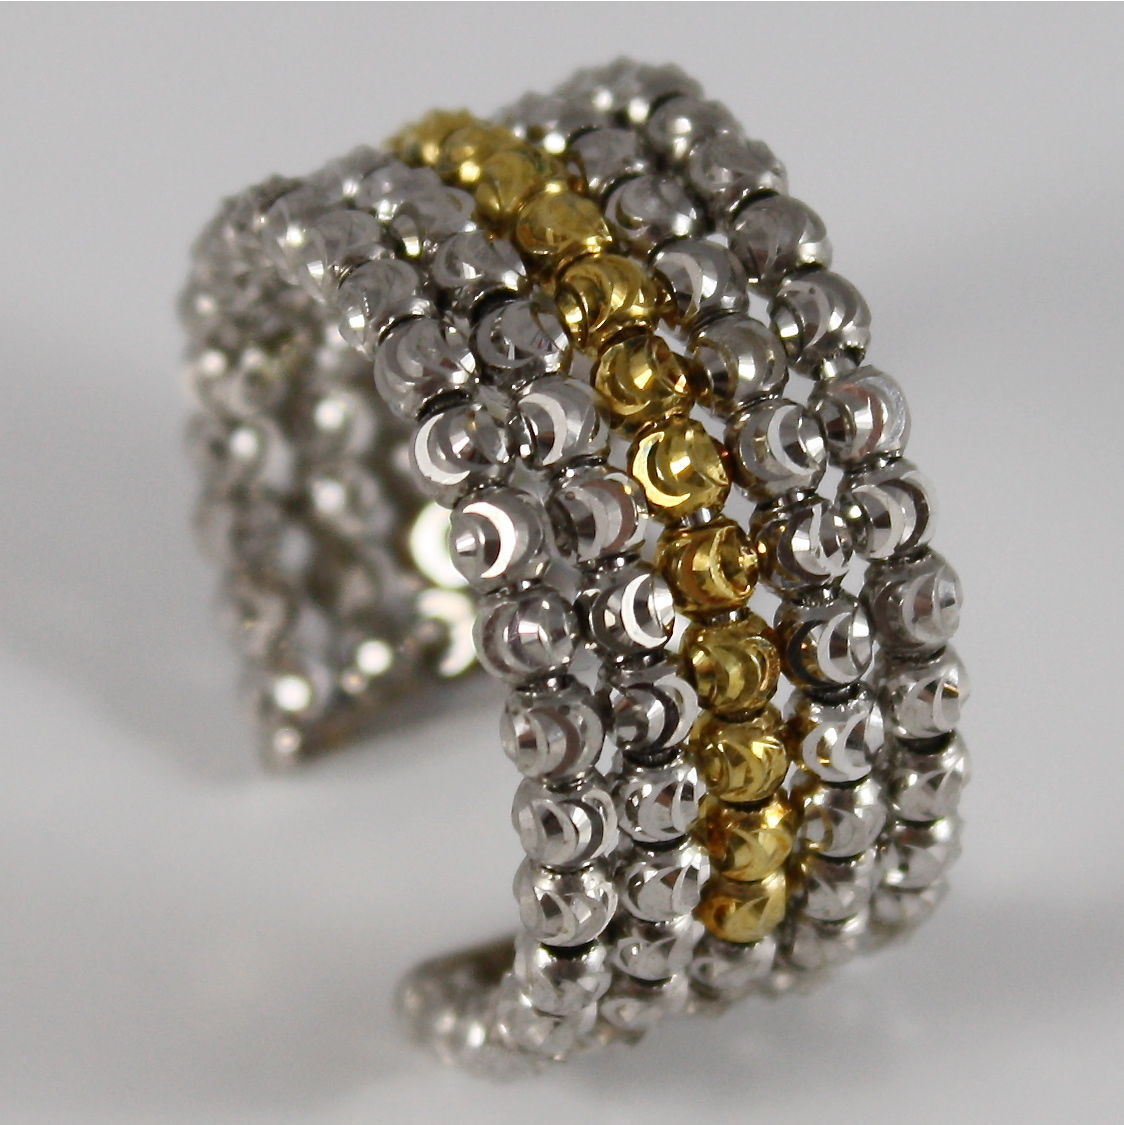 925 SILVER RING OFFICINA BERNARDI FACETED BALLS MADE IN ITALY FIVE WIRE P. GOLD